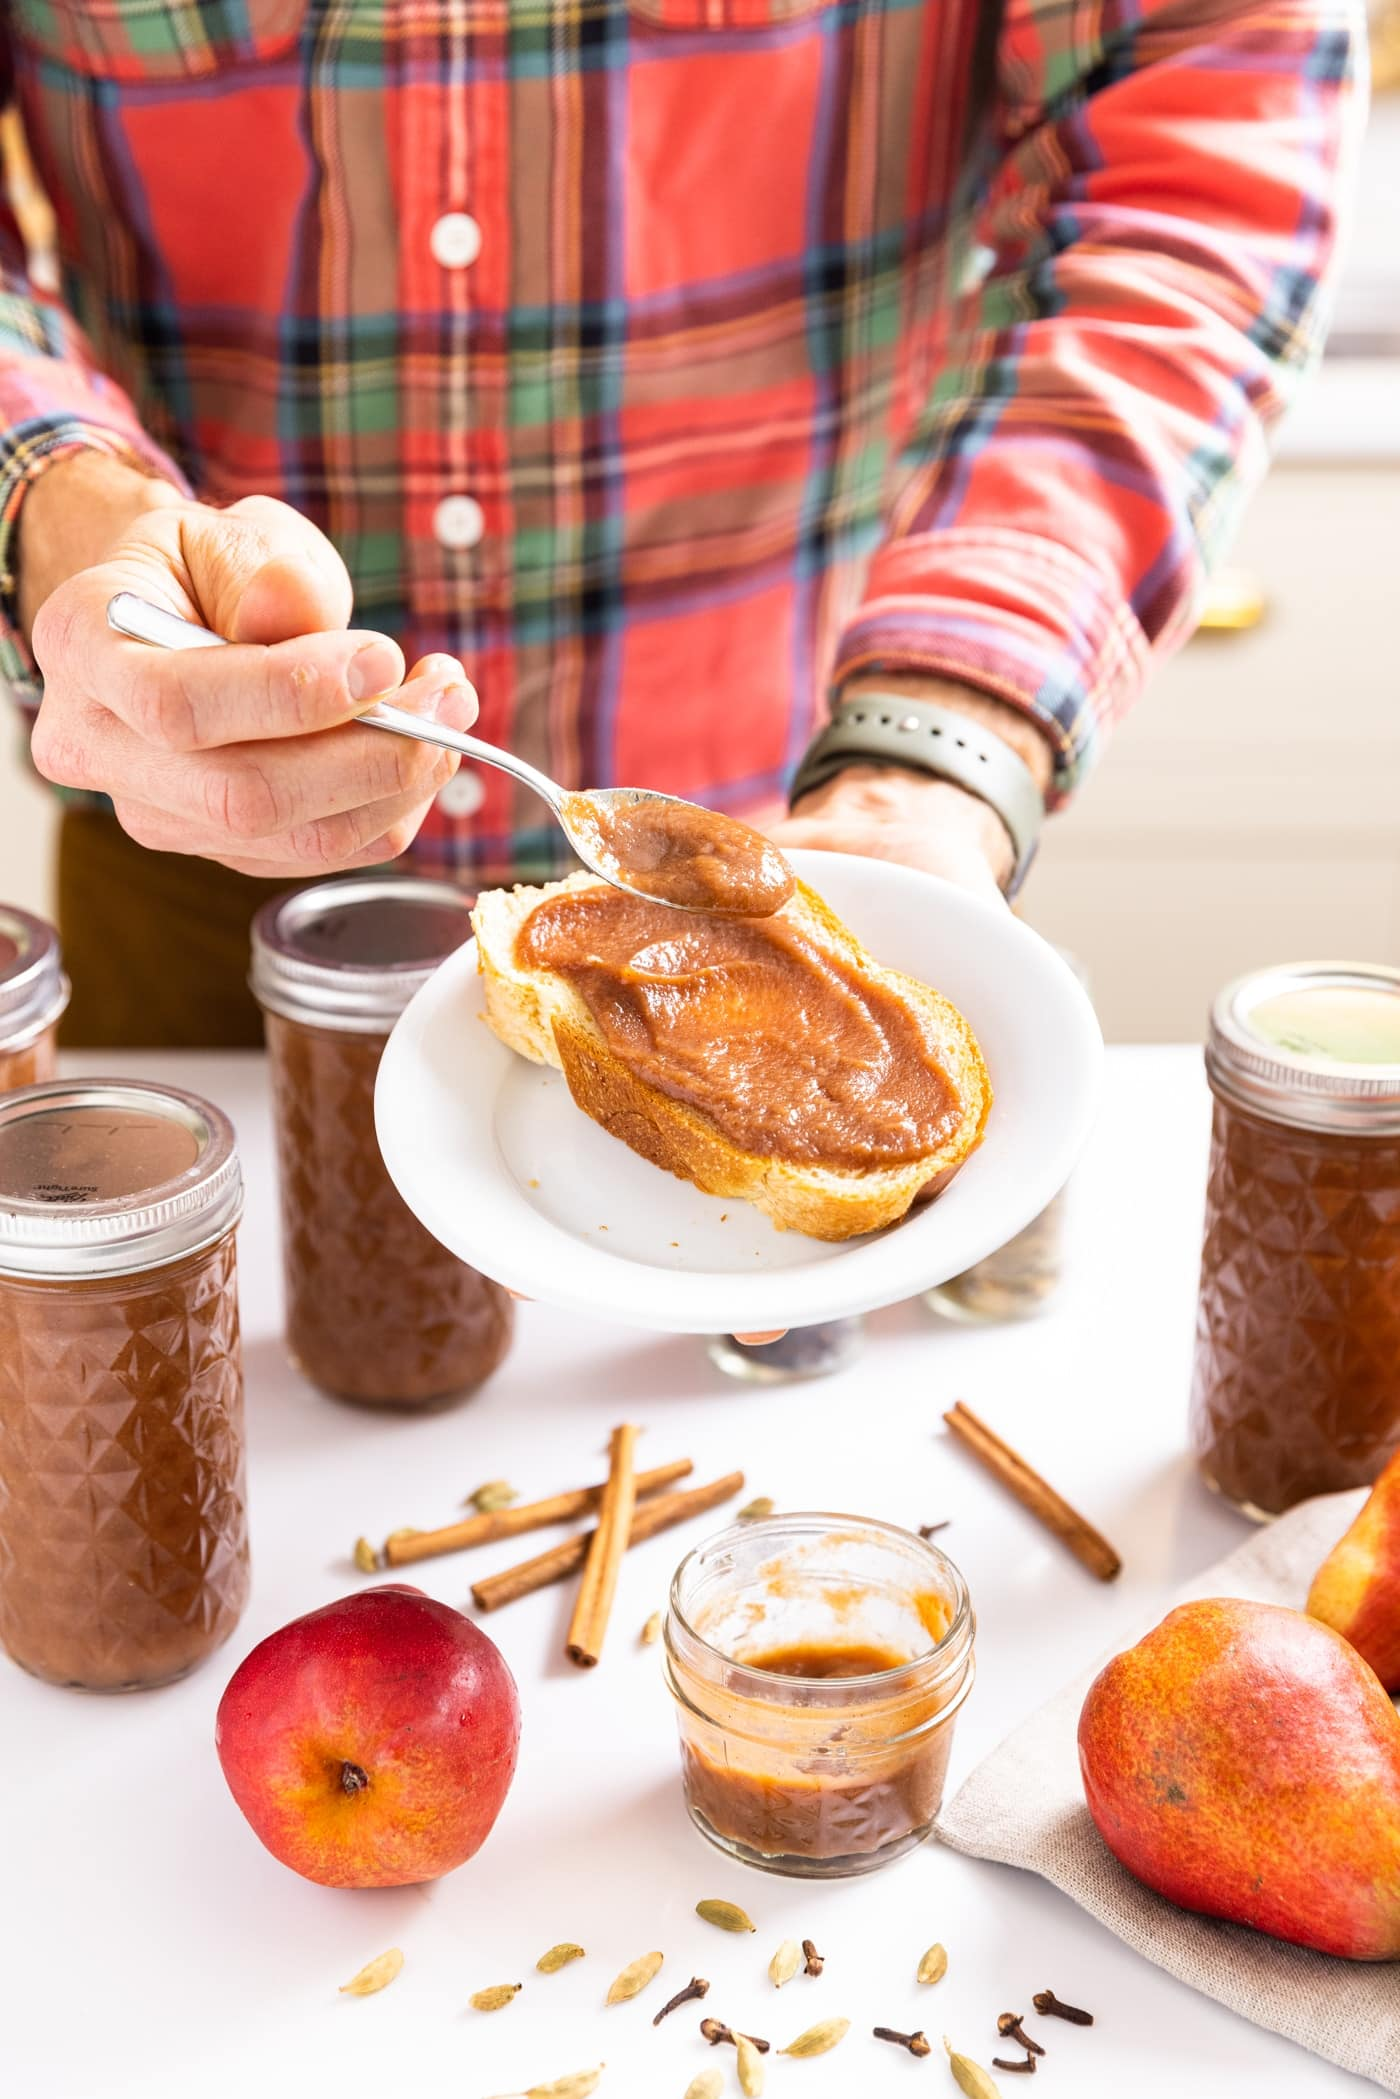 Two hands holding white plate with slice of bread on it with spoon spreading pear butter onto bread